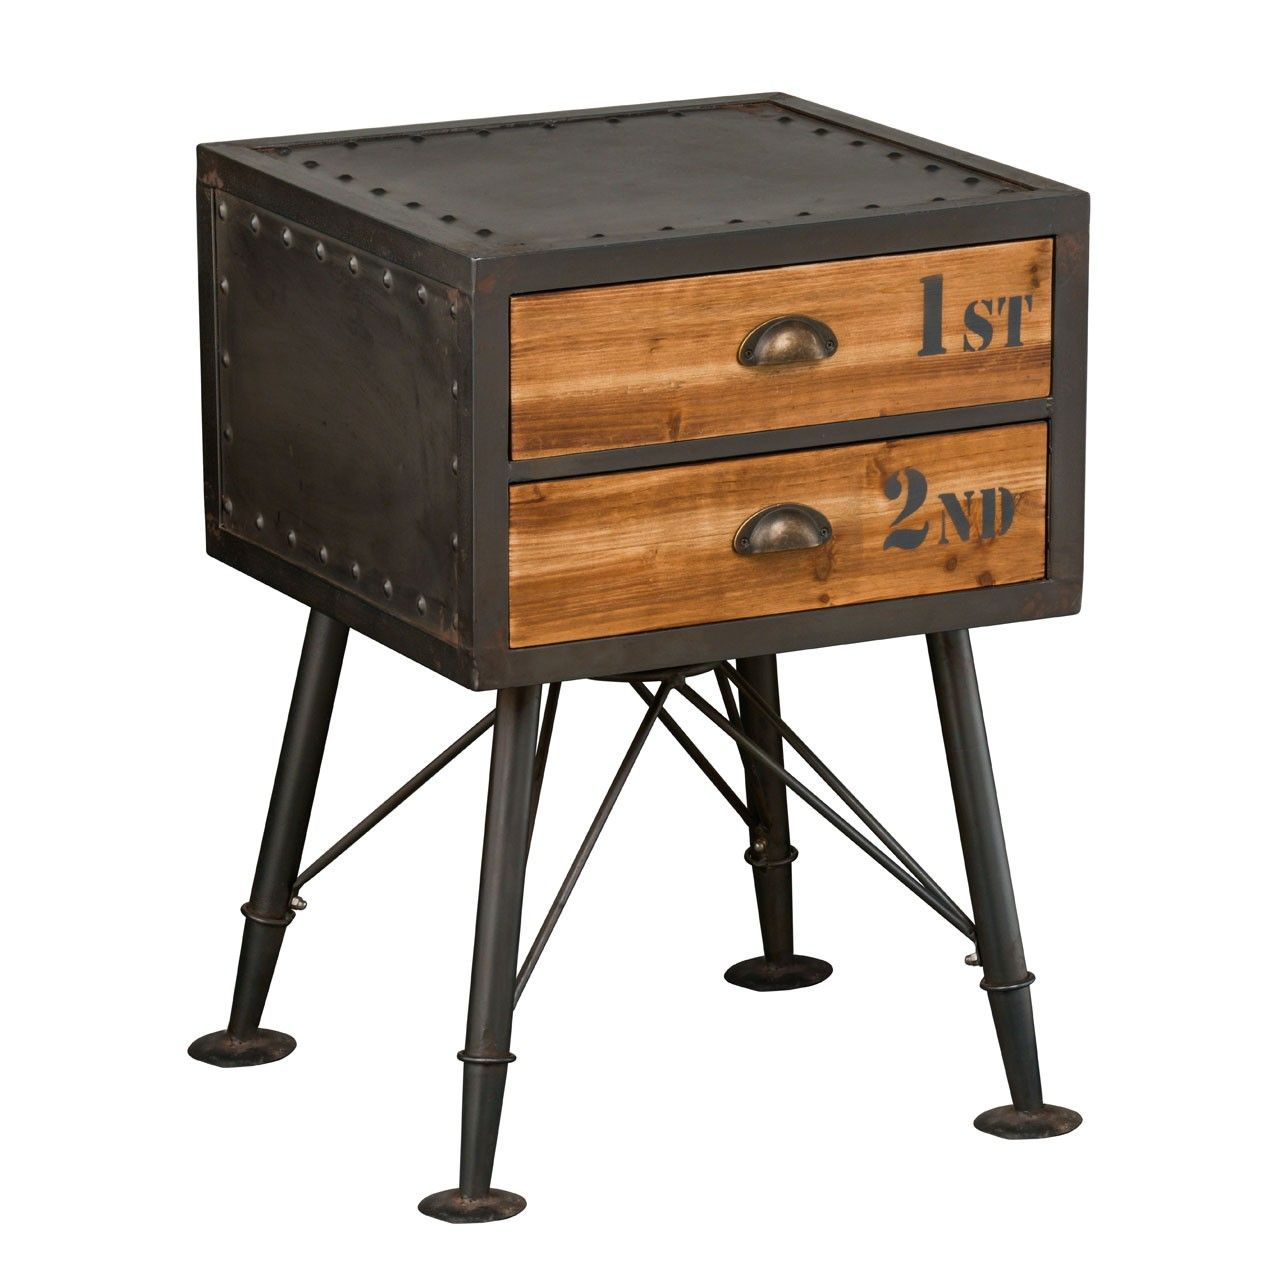 Image result for industrial nightstand table Industrial